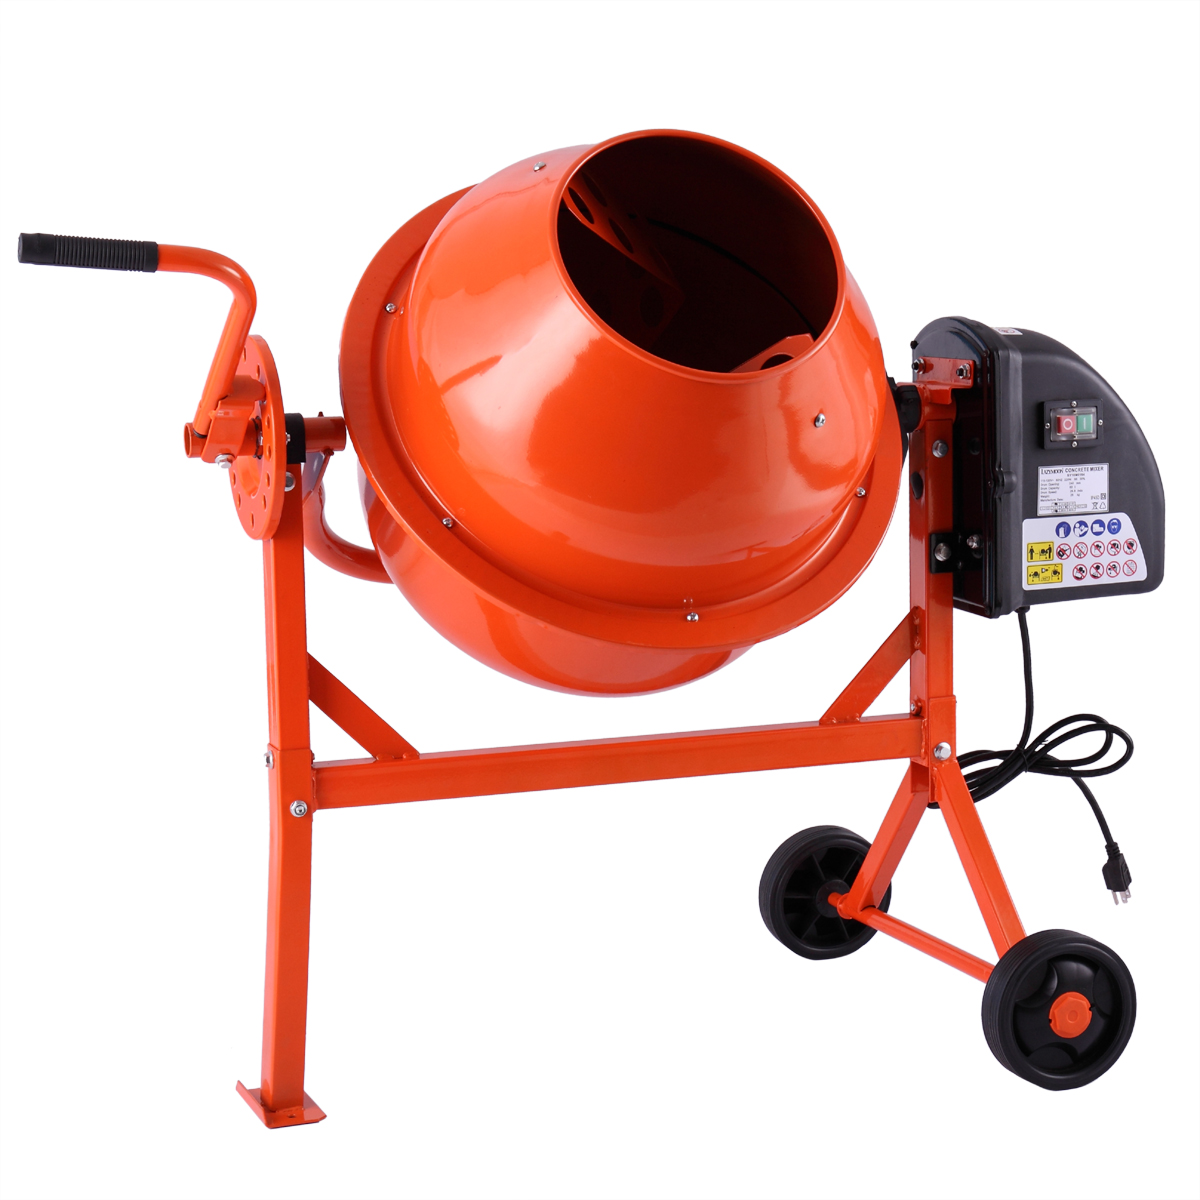 Lazymoon 2-1 5cuft Portable Electric Concrete Cement Mixer Barrow Machine Mixing mortar by Lazymoon